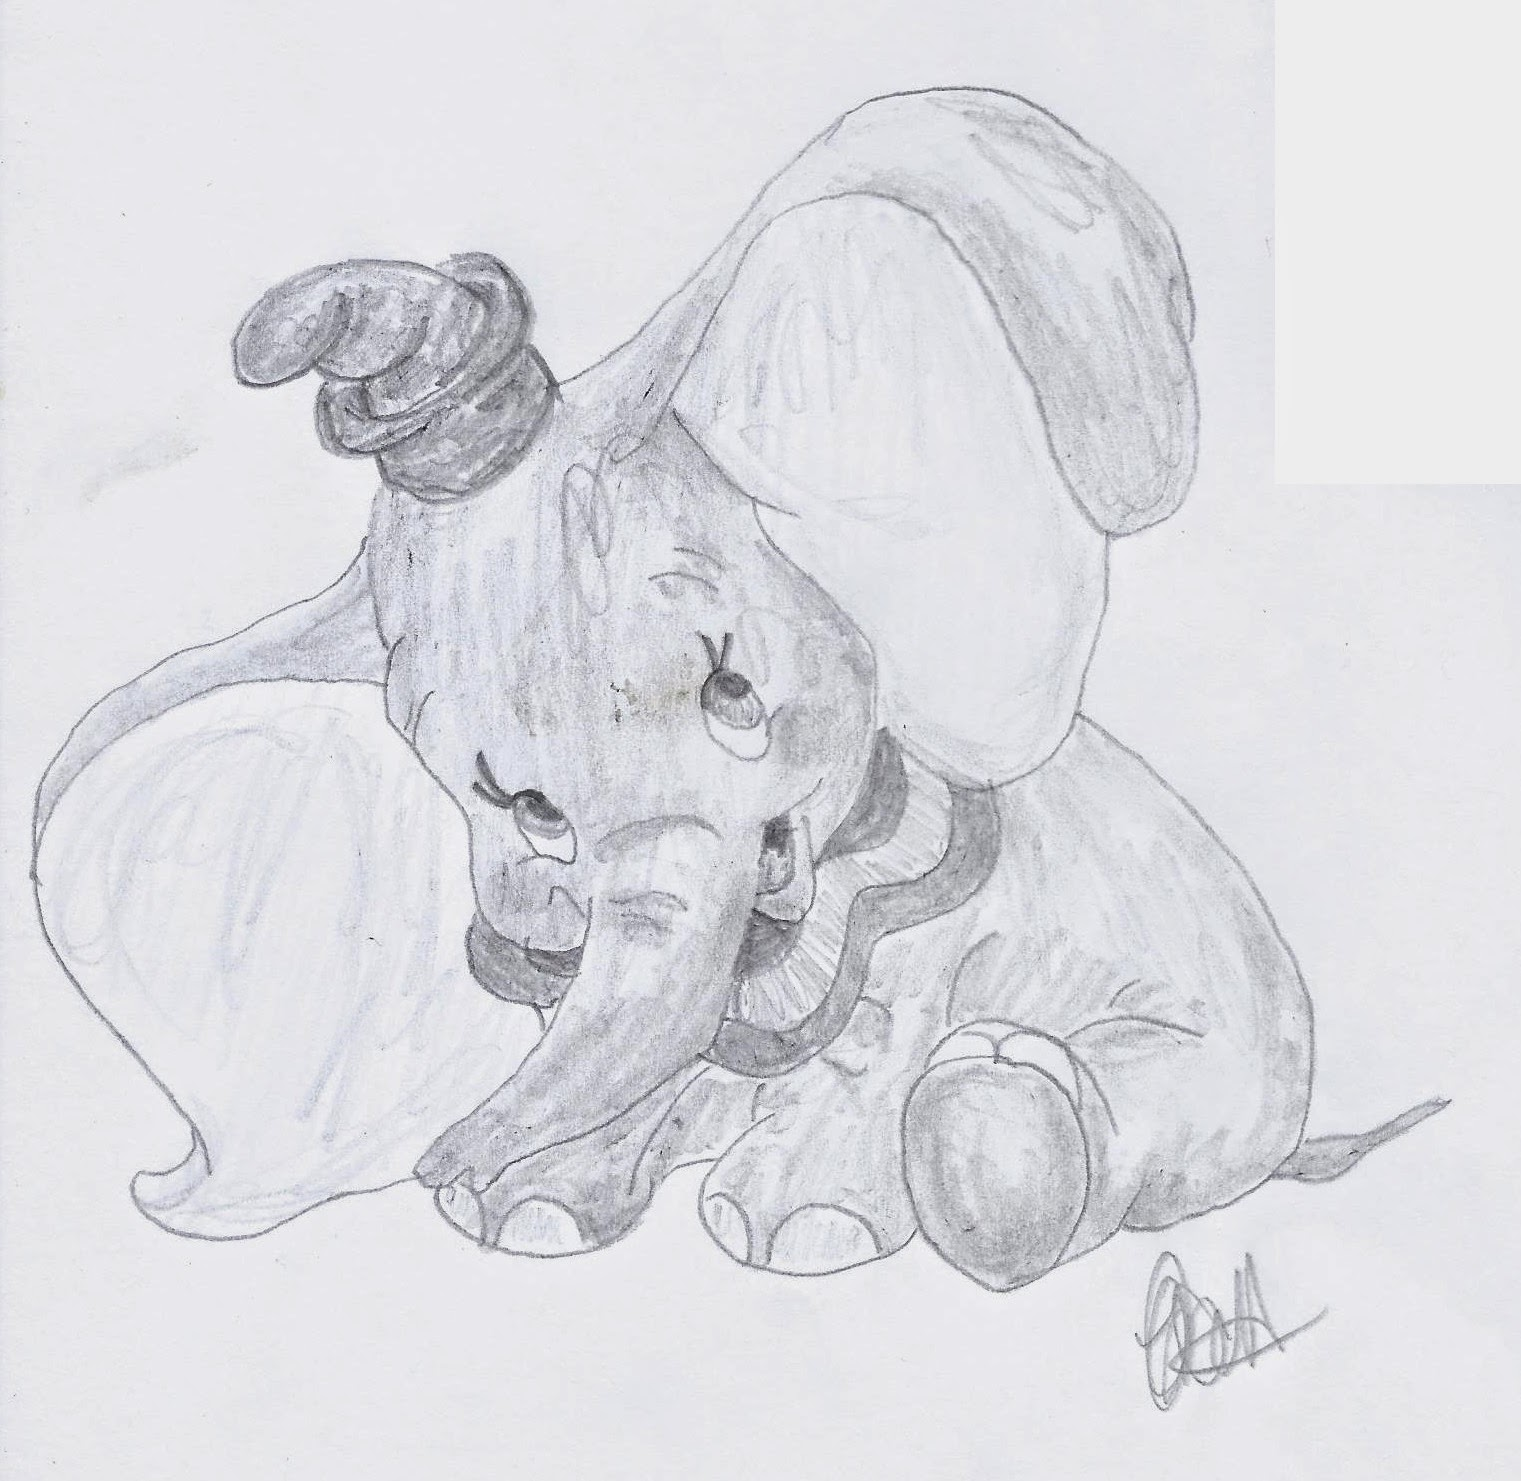 Disney Study, Dumbo, www.JoLinsdell.com #Disney #Sketches #Illustrating